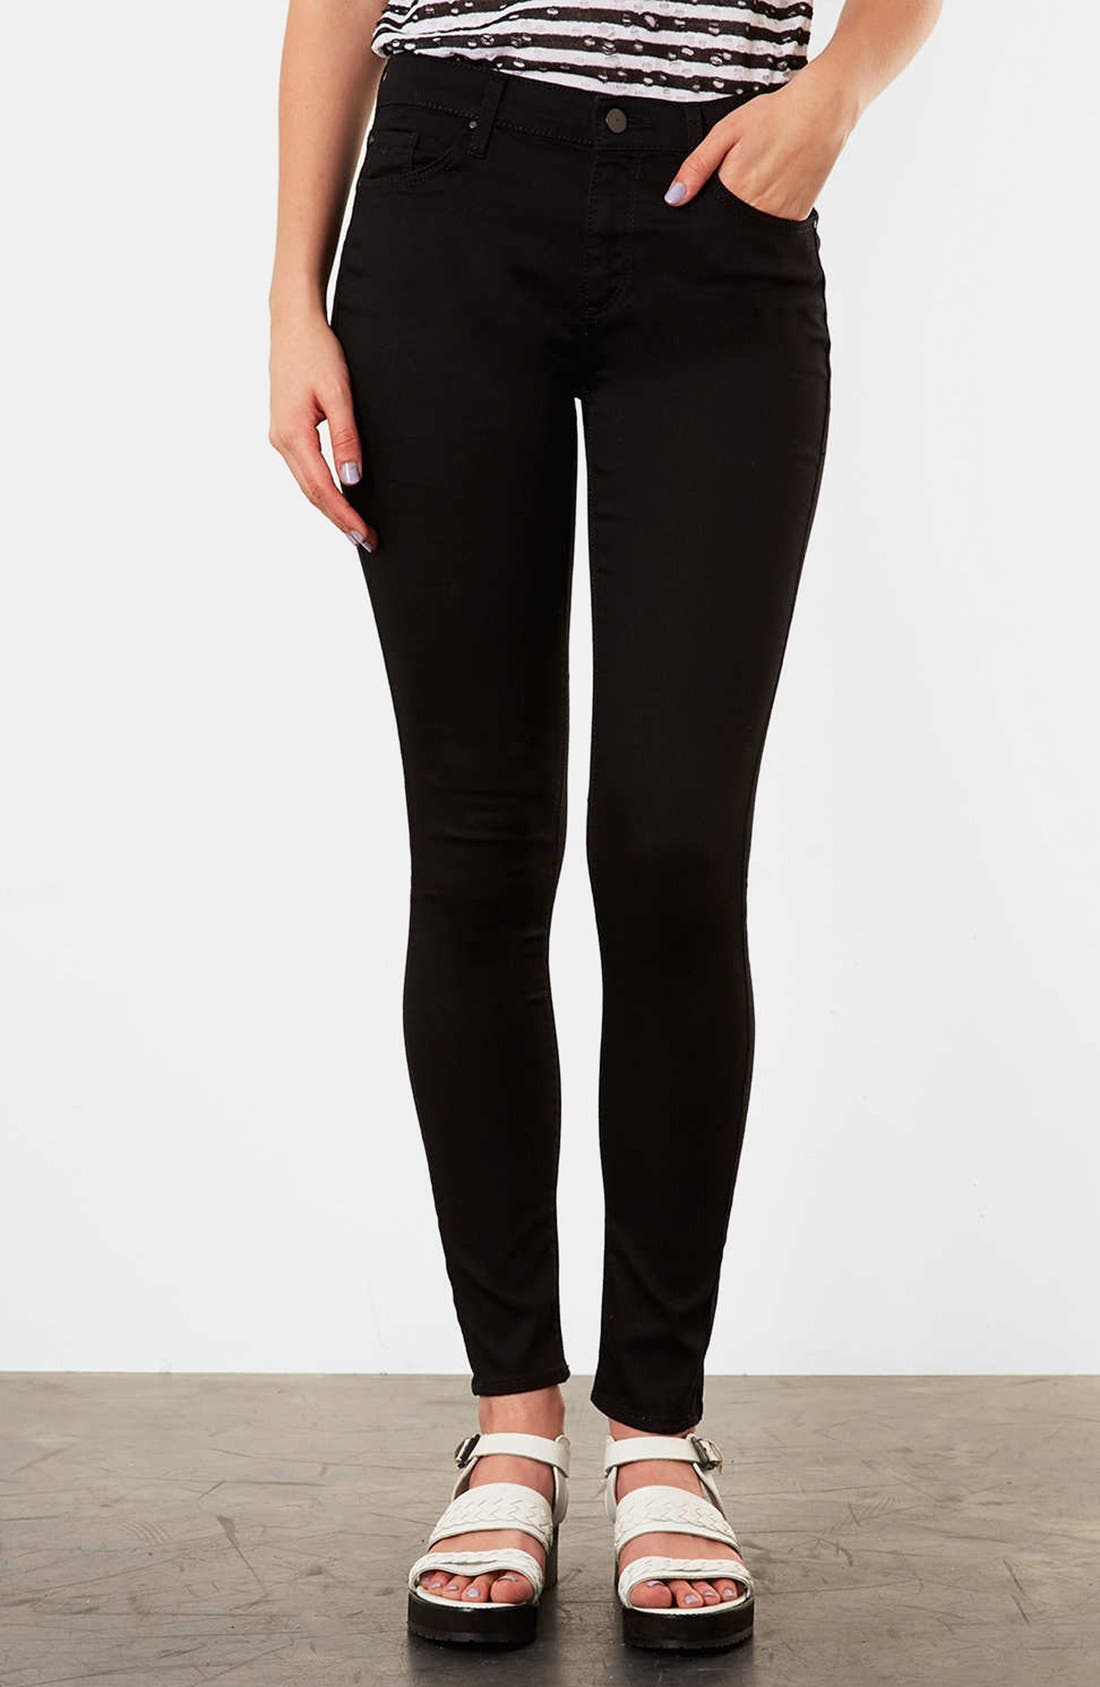 Alternate Image 1 Selected - Topshop Moto 'Leigh' Skinny Jeans (Petite)